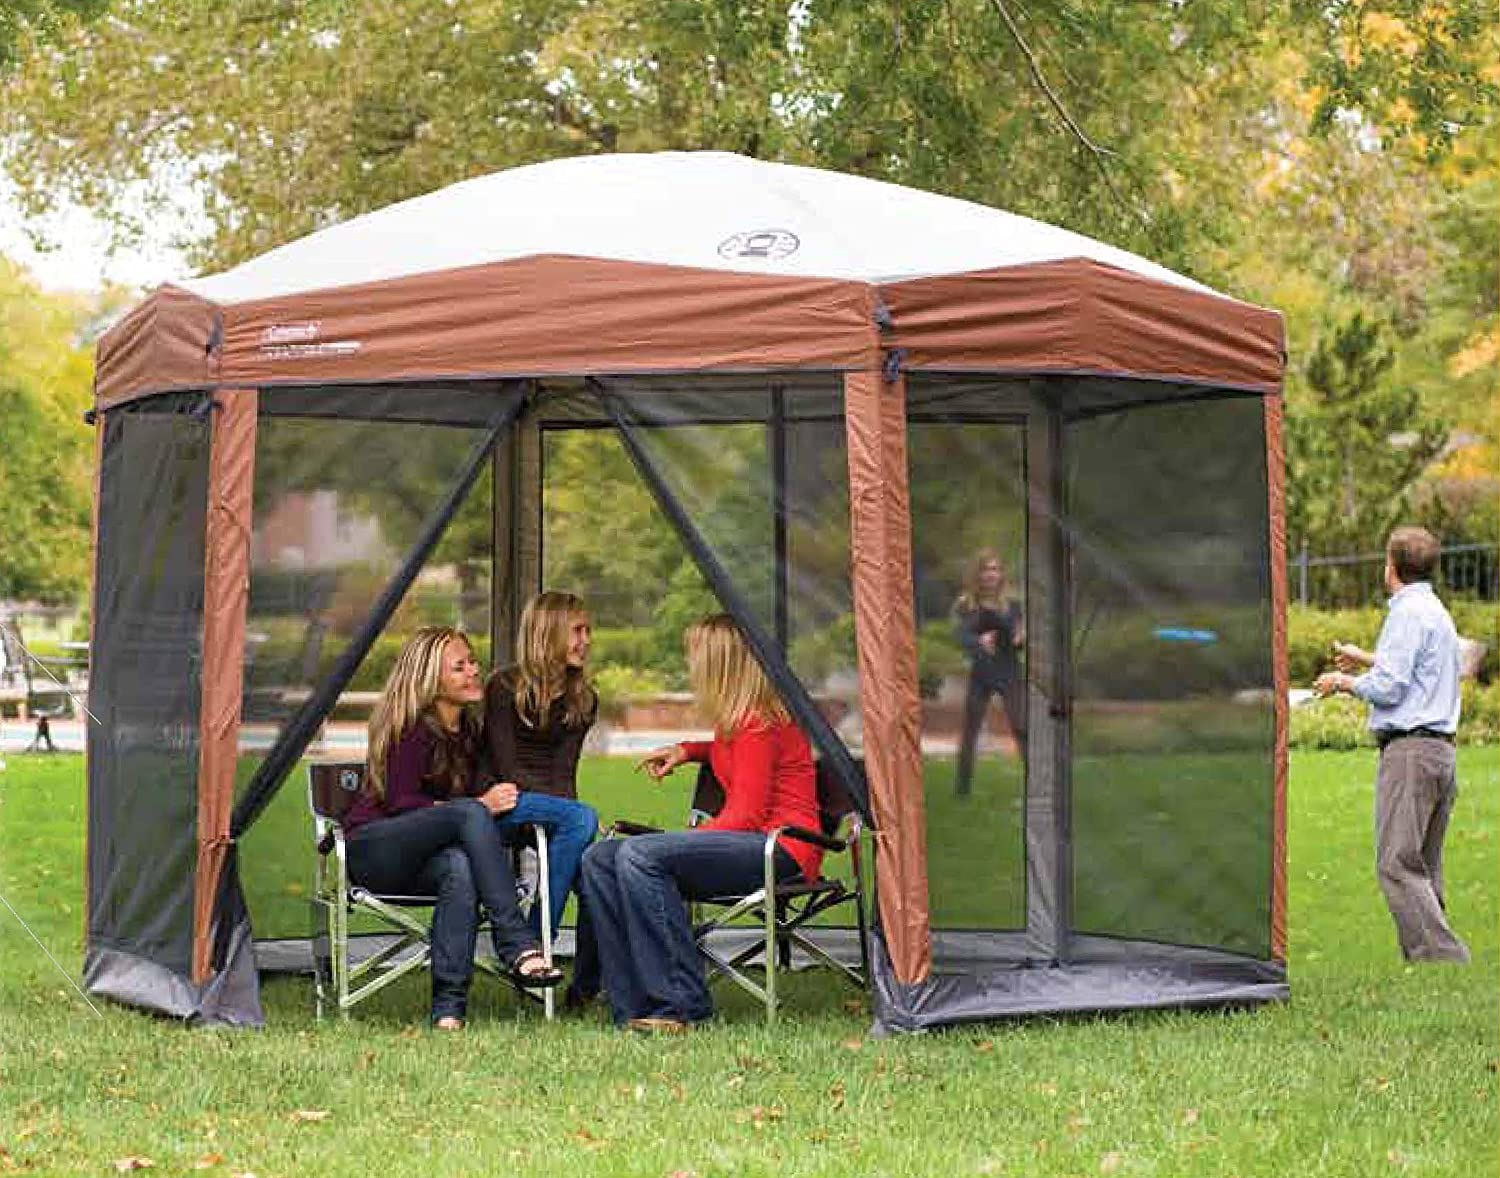 Coleman Screened Canopy Tent with Instant Setup | Back Home Screenhouse Sets Up in 60 Seconds 91QtN1G7pZL